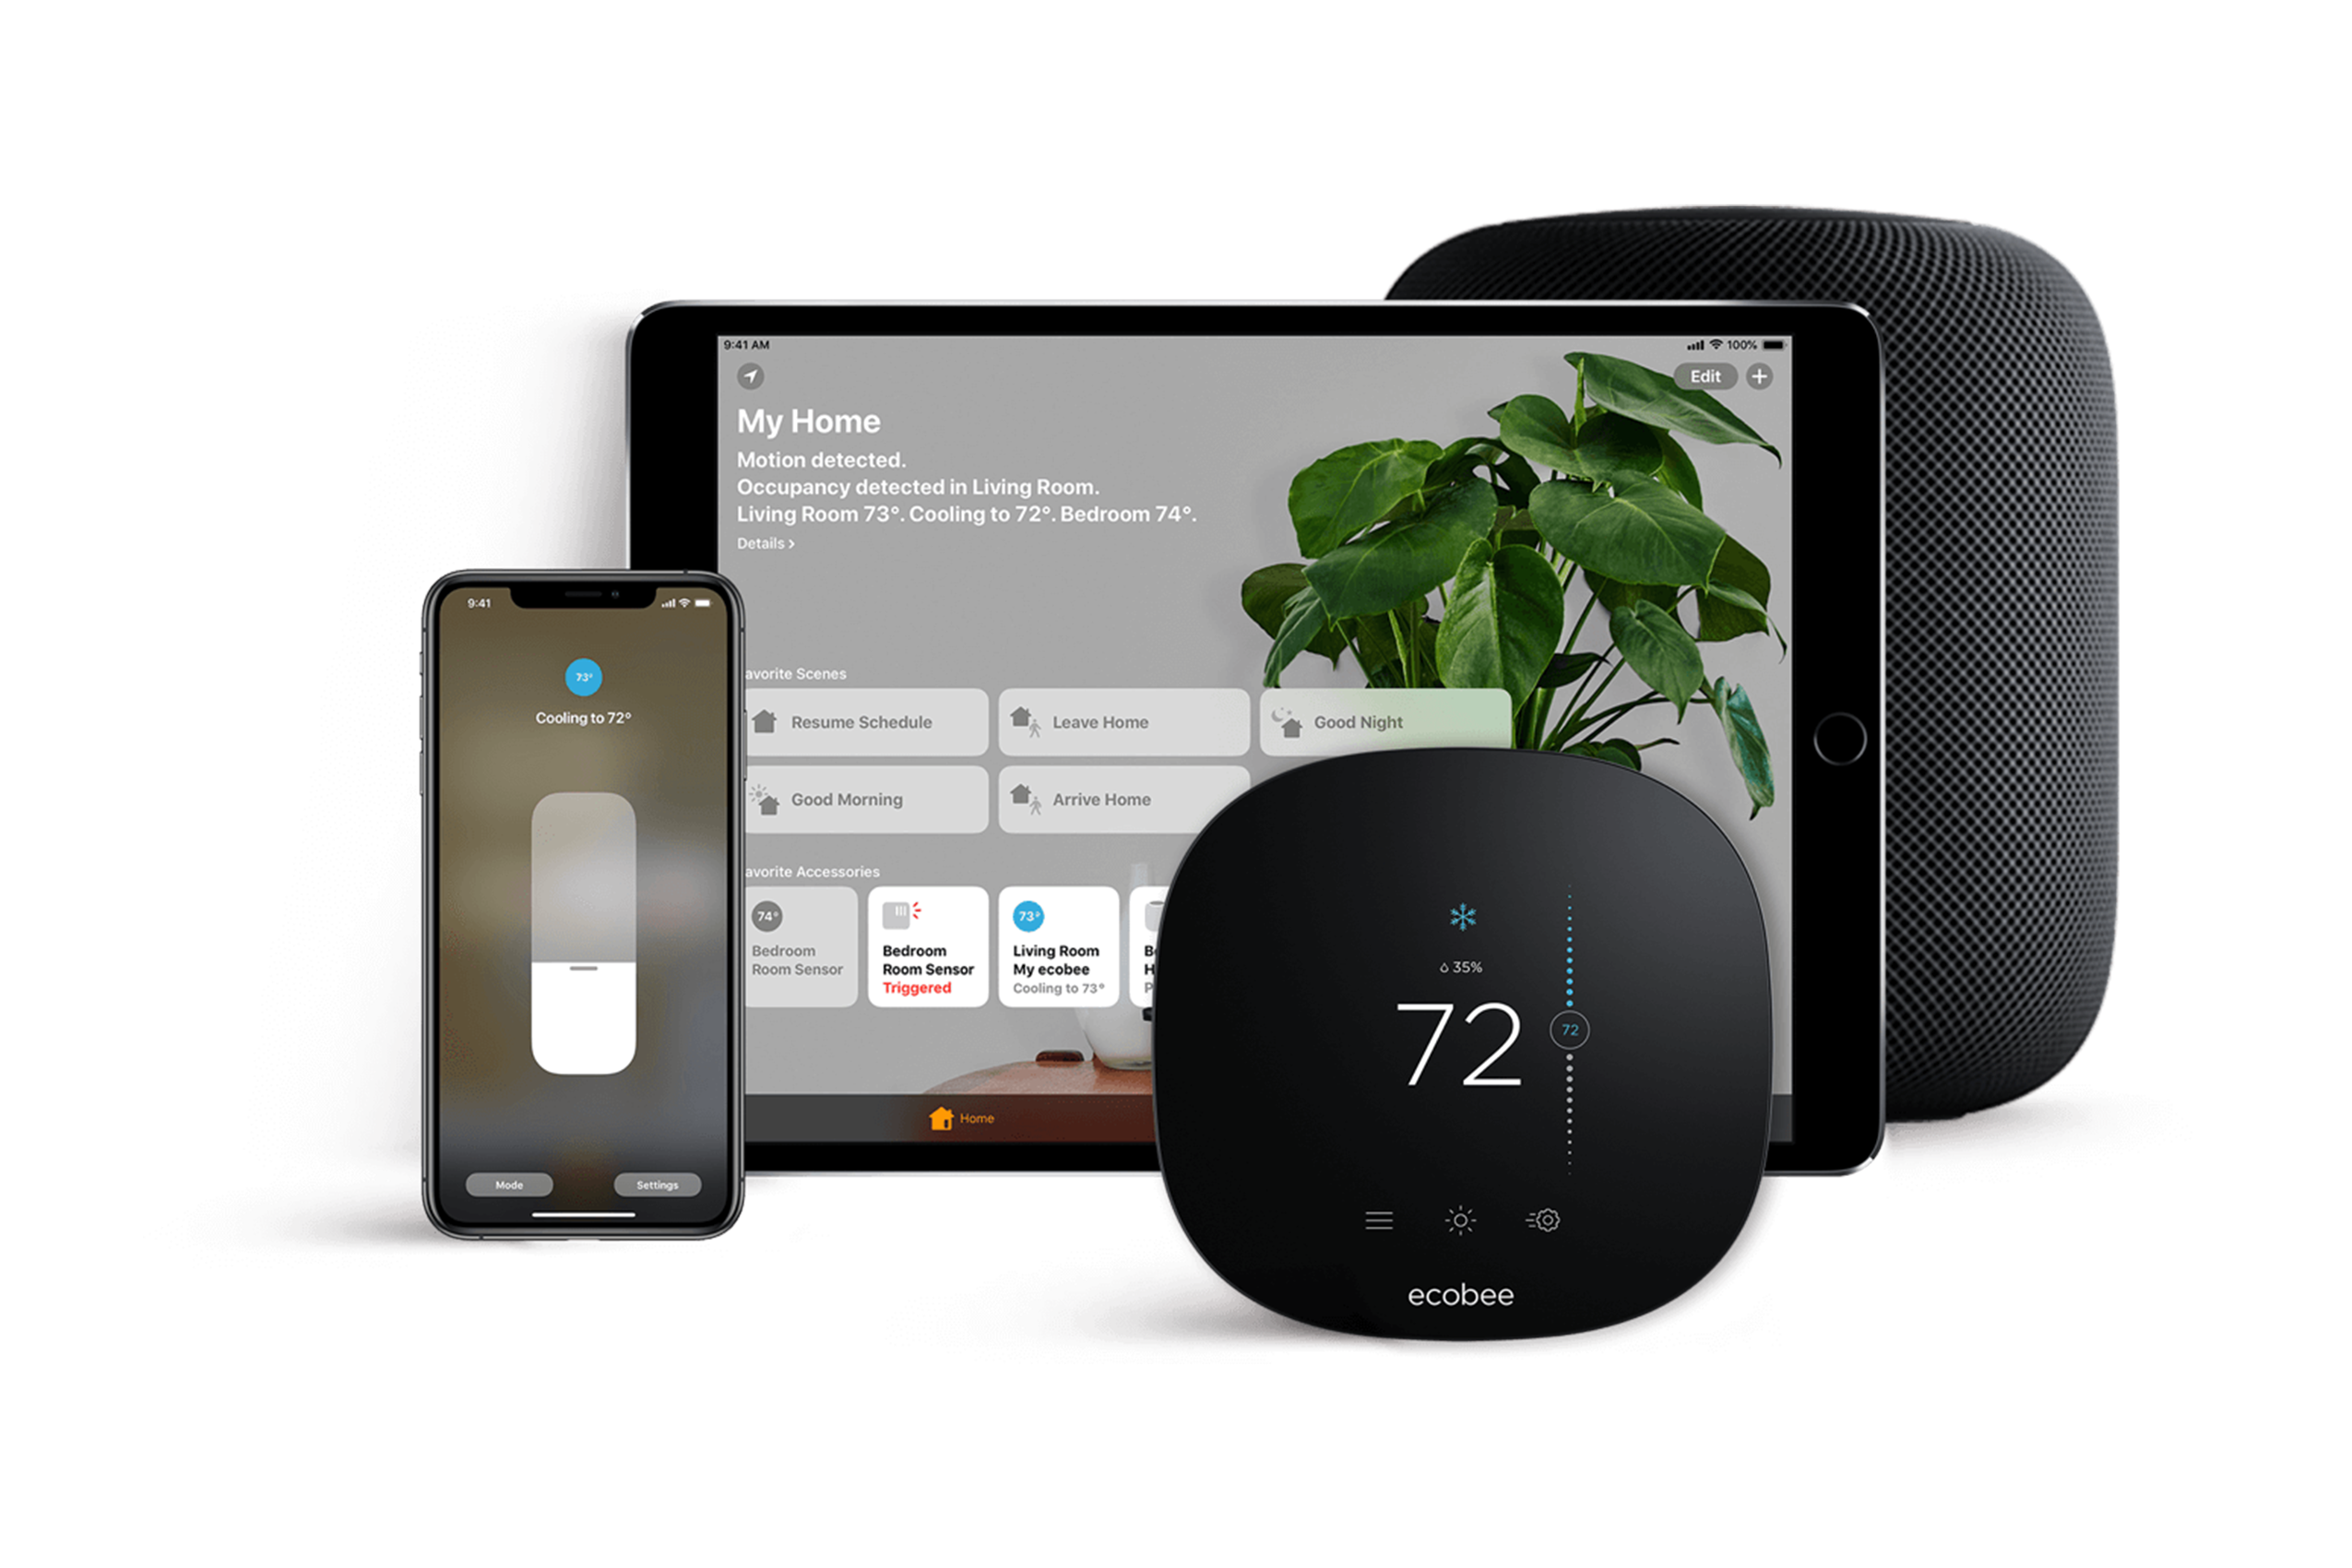 ecobee smart home products.